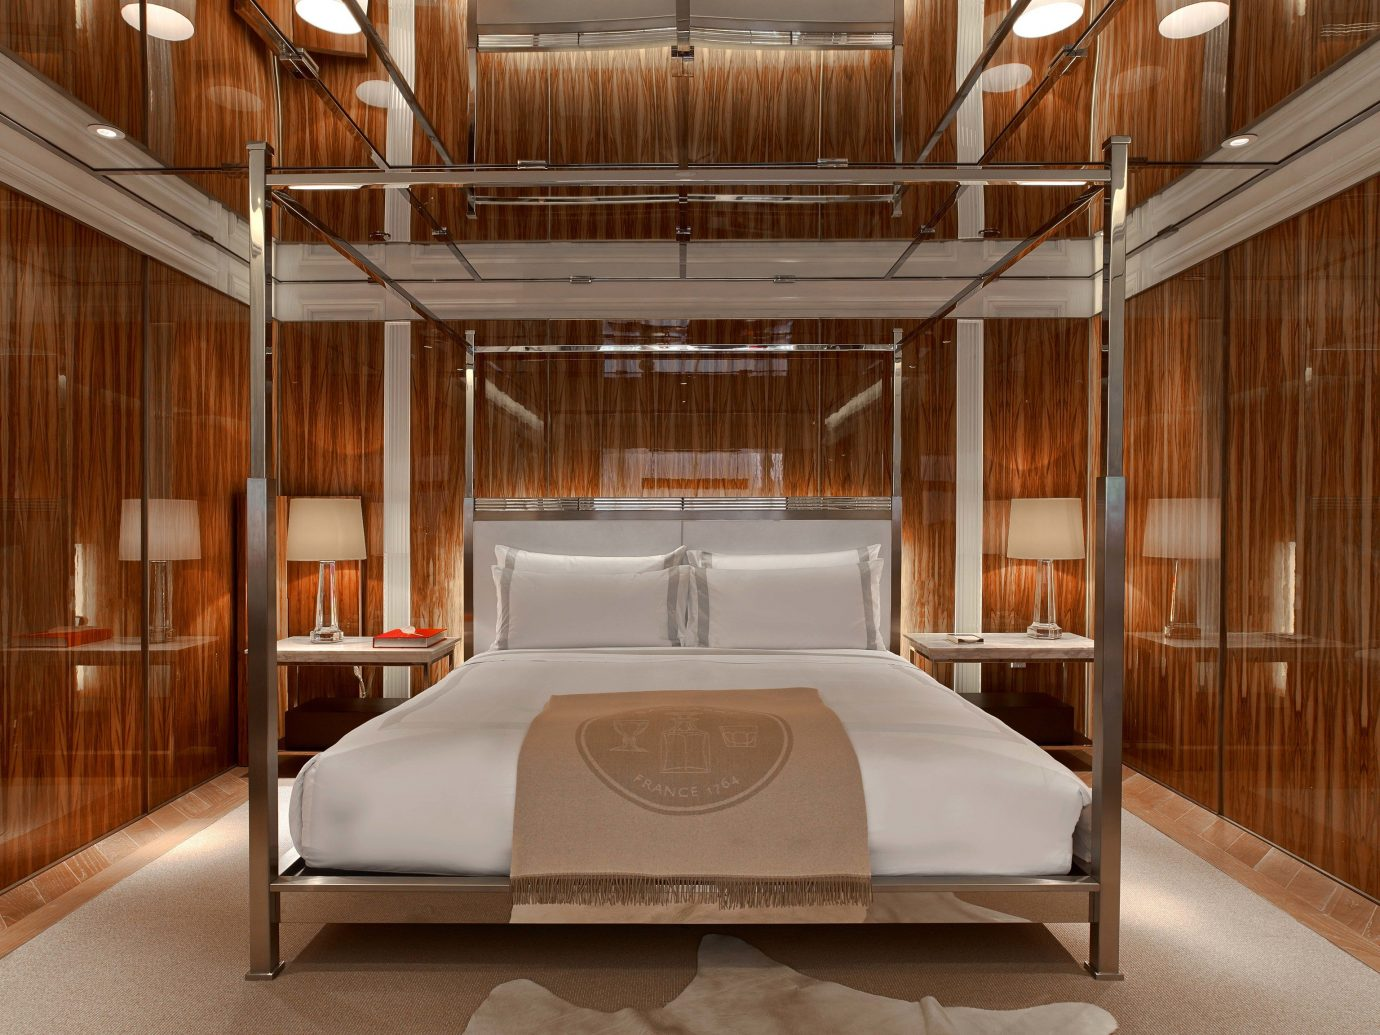 Hotels Luxury Travel indoor floor ceiling room interior design Architecture bed frame wood furniture bed interior designer flooring Bedroom